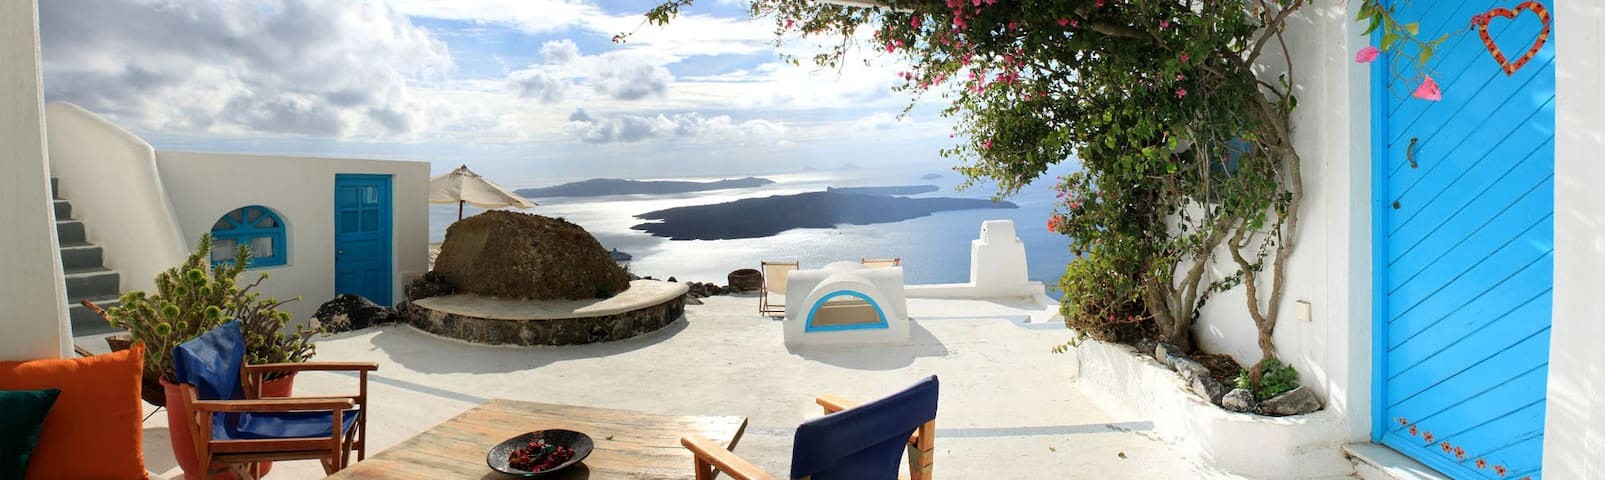 Traditional,Good view,Location!!! - Thira - Ev